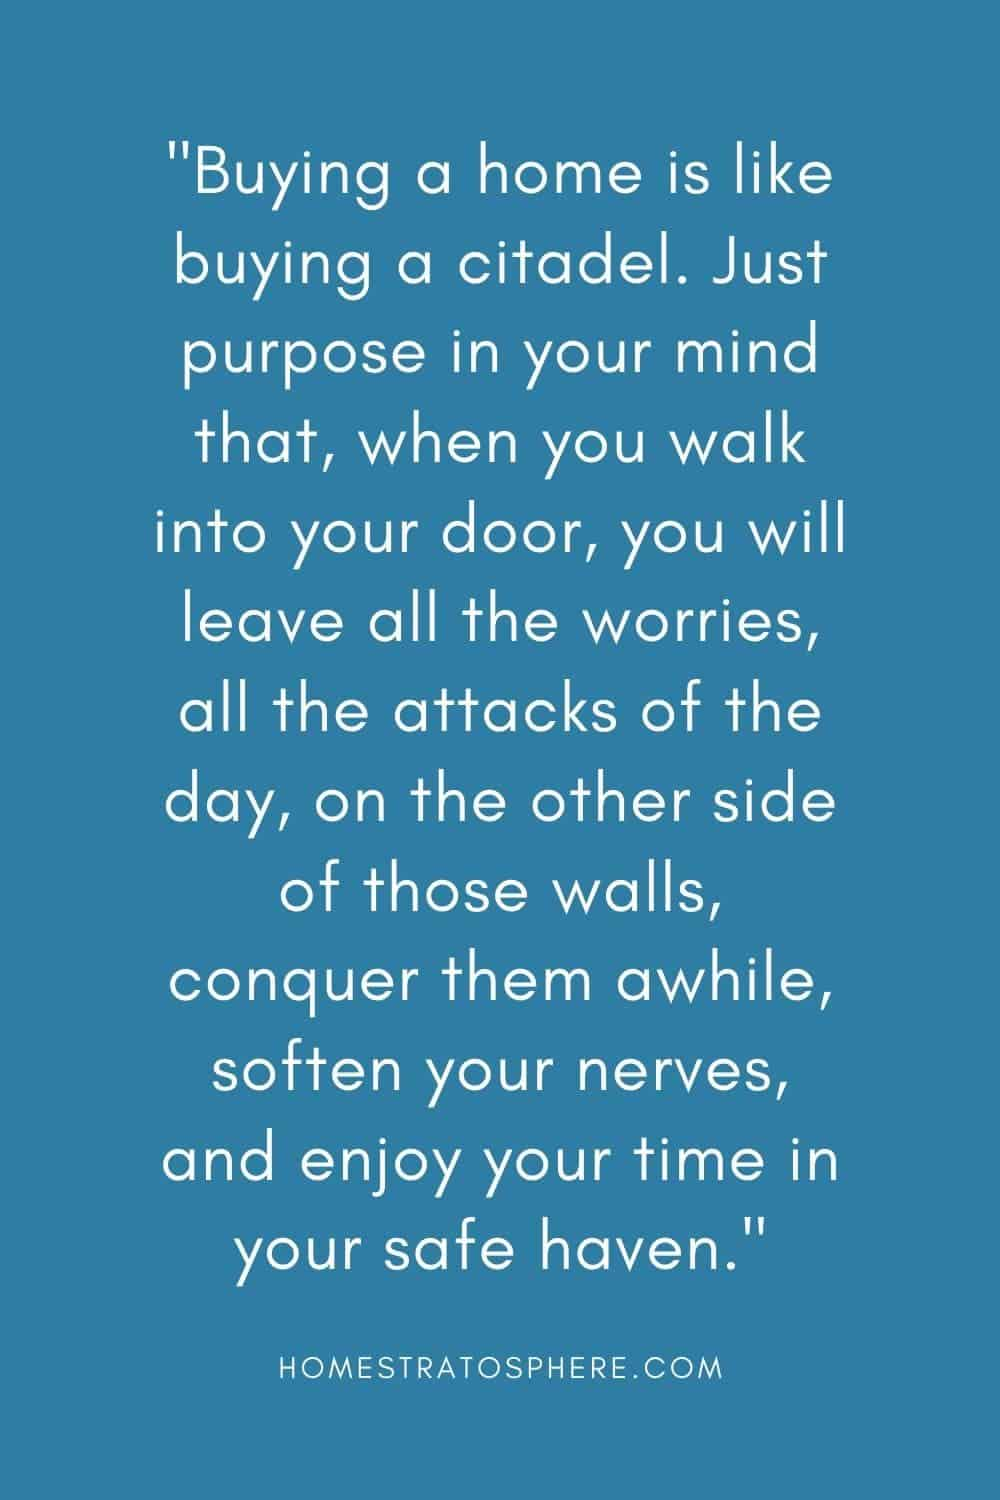 """Buying a home is like buying a citadel. Just purpose in your mind that, when you walk into your door, you will leave all the worries, all the attacks of the day, on the other side of those walls, conquer them awhile, soften your nerves, and enjoy your time in your safe haven."""